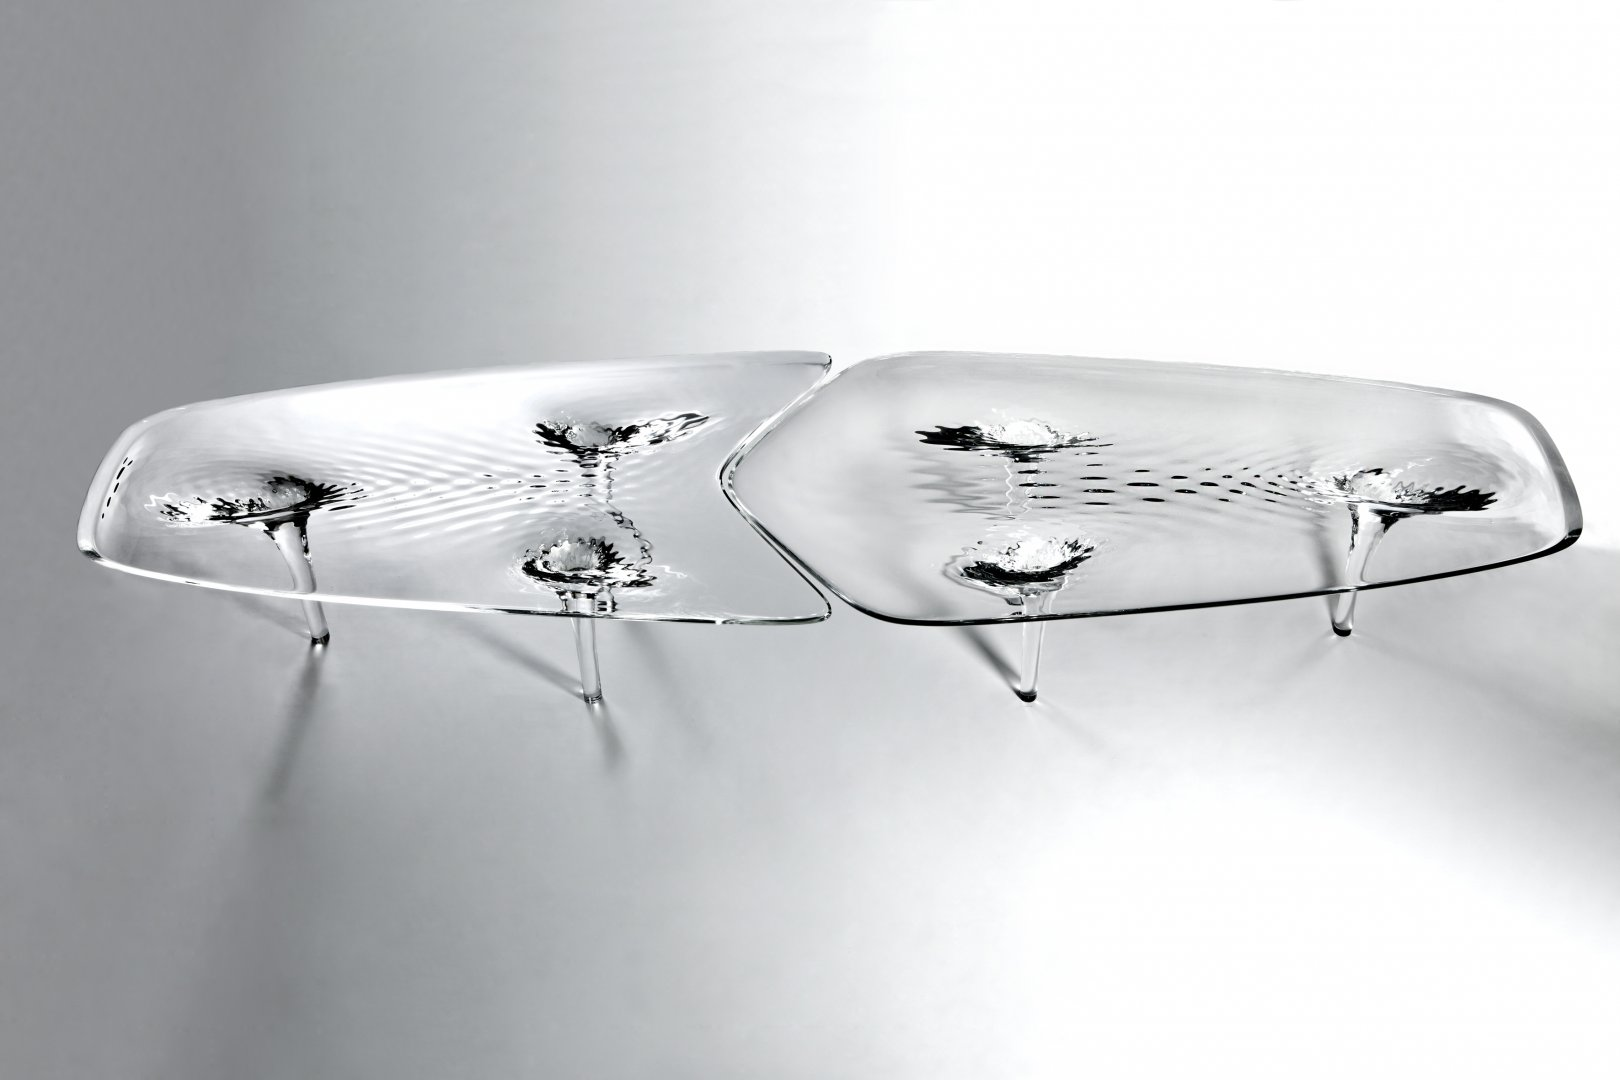 Liquid glacial table by zaha hadid architects for Zaha hadid liquid glacial